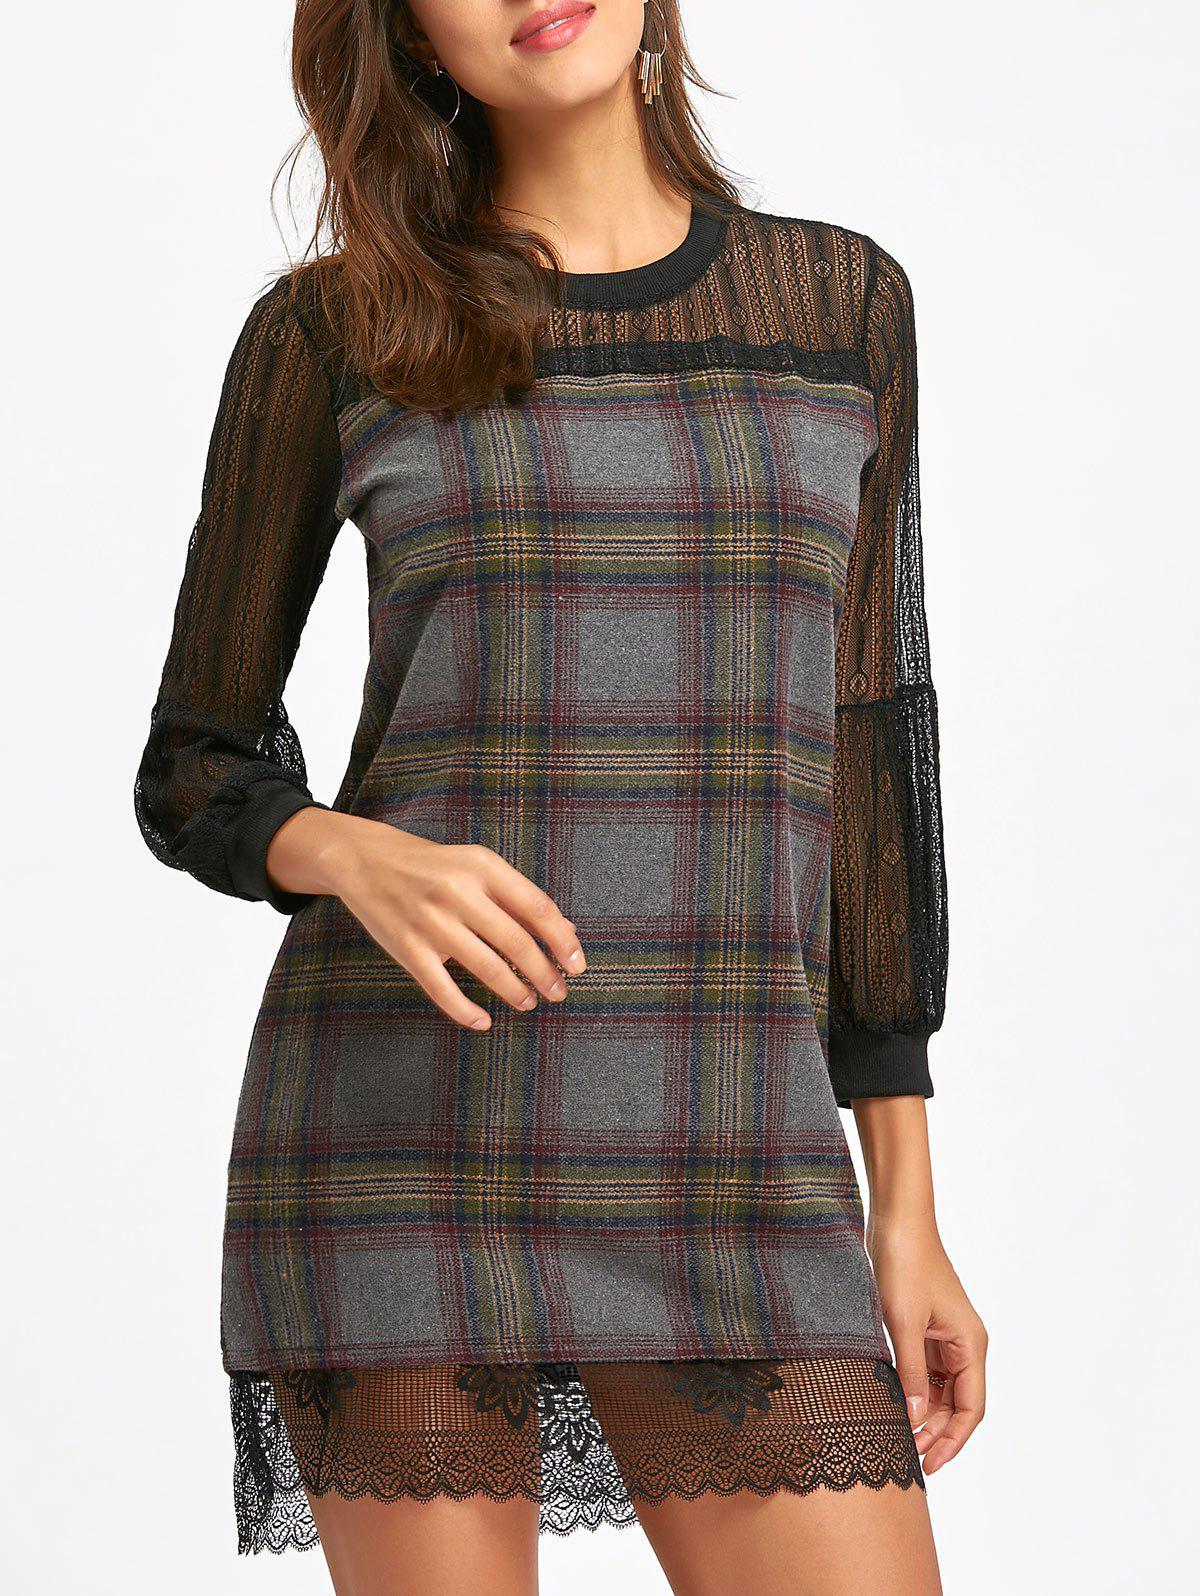 Lace Insert Plaid Puff Sleeve Mini Wool Dress long sleeve lace insert mini dress